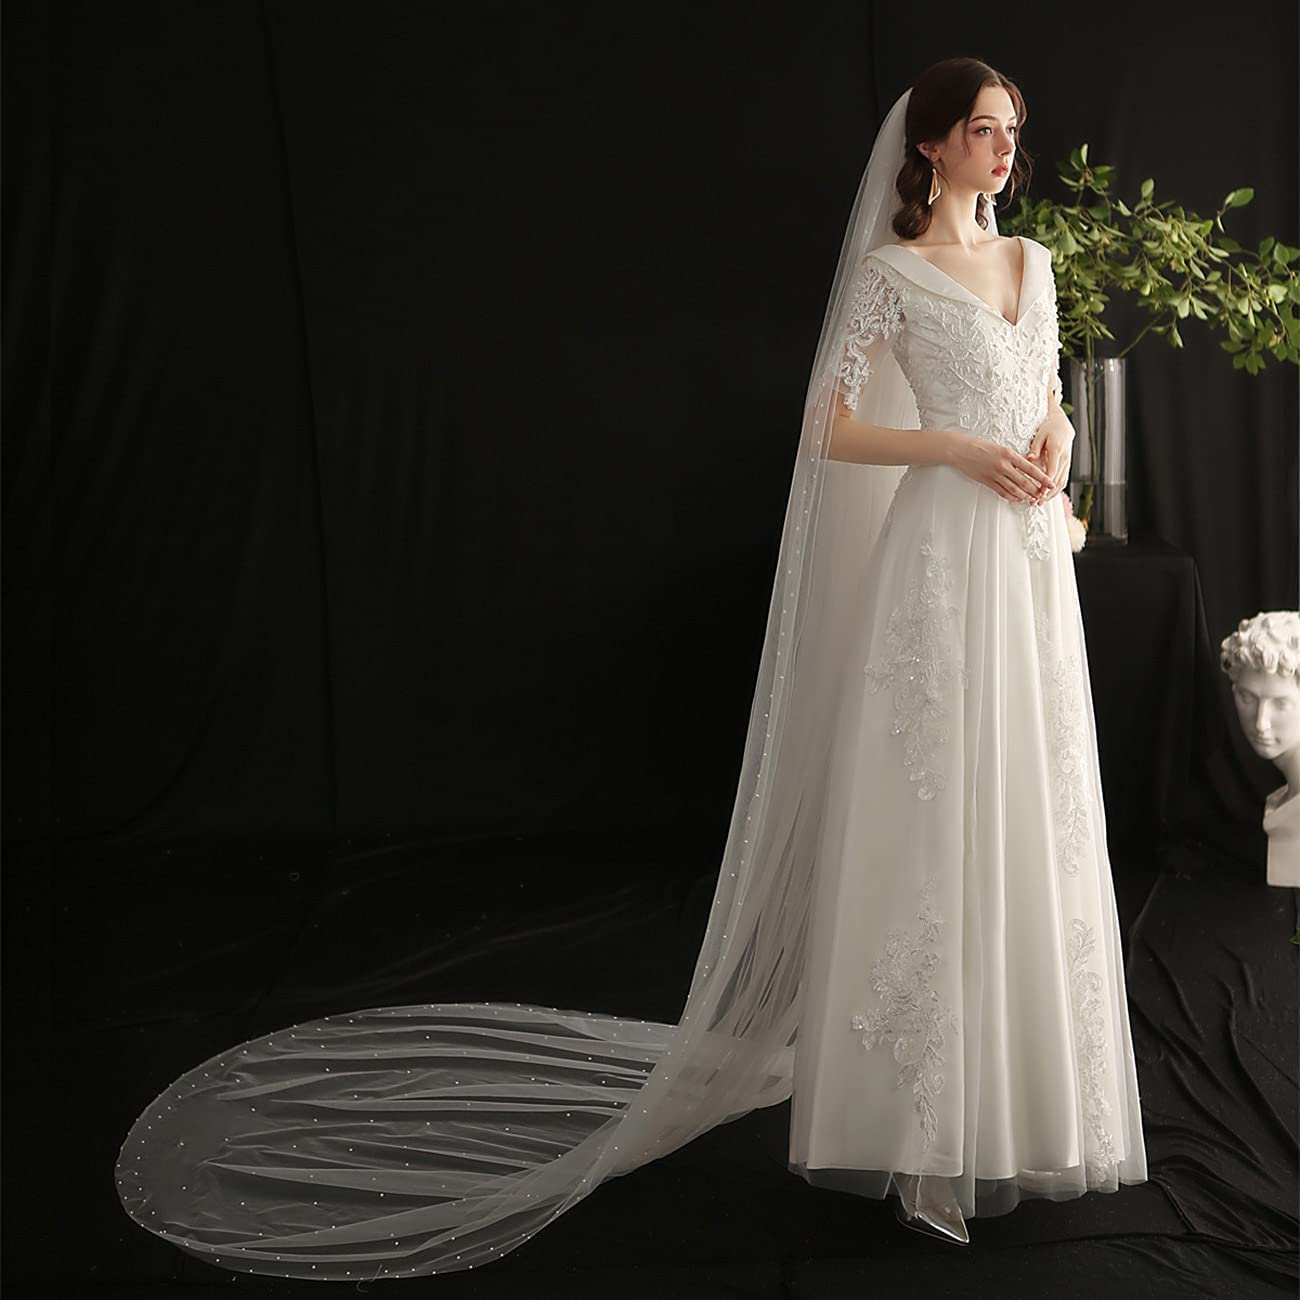 JZJZ Wedding Bridal Veil Max 84% OFF with Comb Tulle Excellence Hair Edge Tier Pearl 1